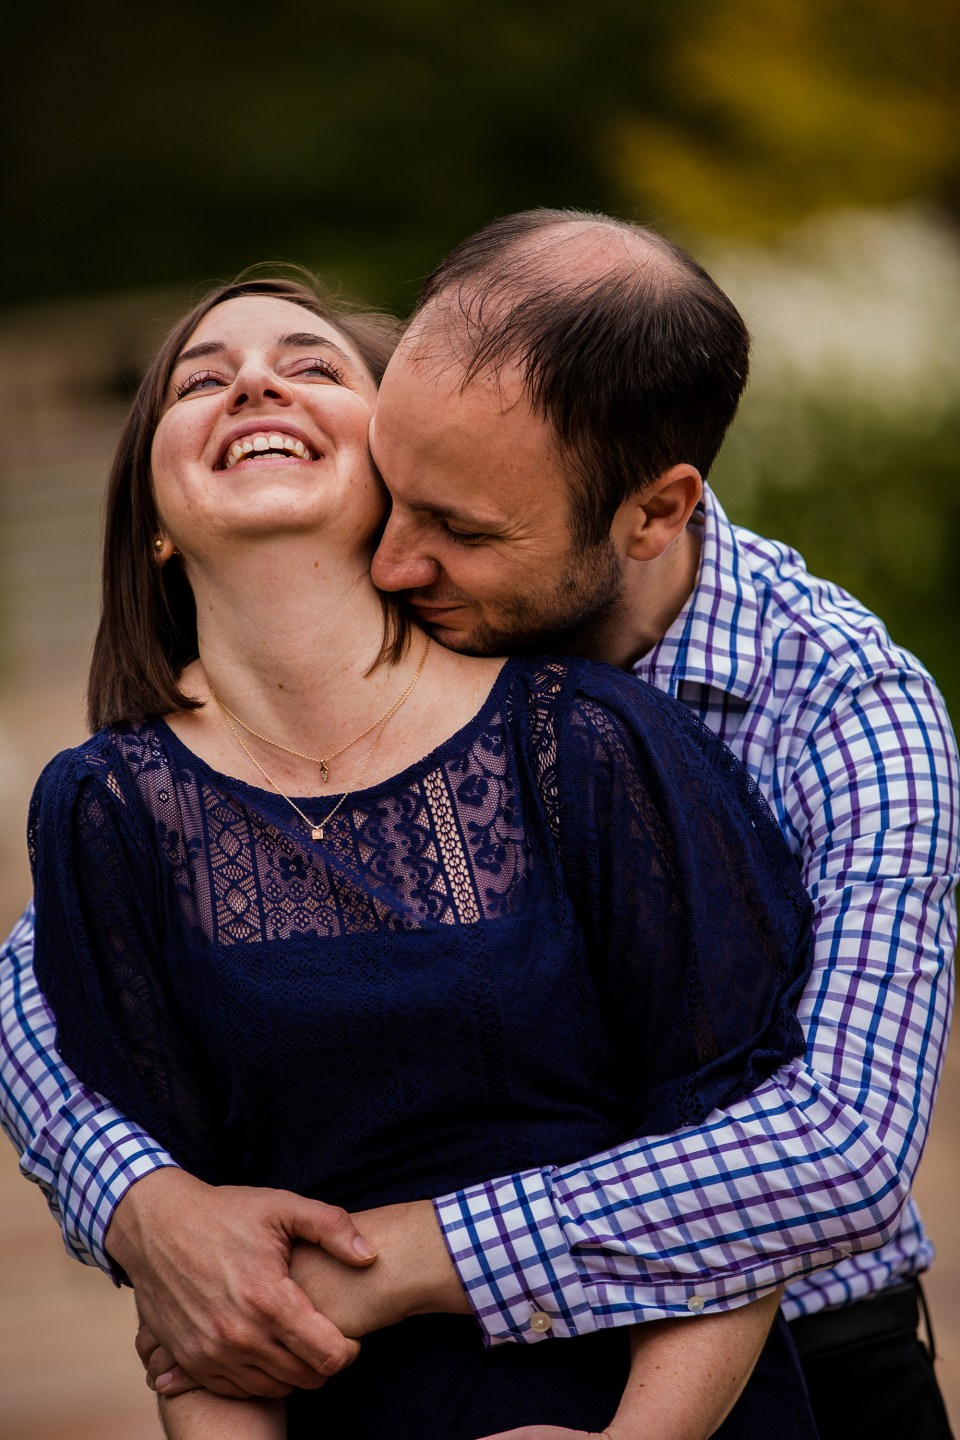 Pittsbugh PA Man hugs his fiancee from behind while she laughs on a walk in Mellon Park